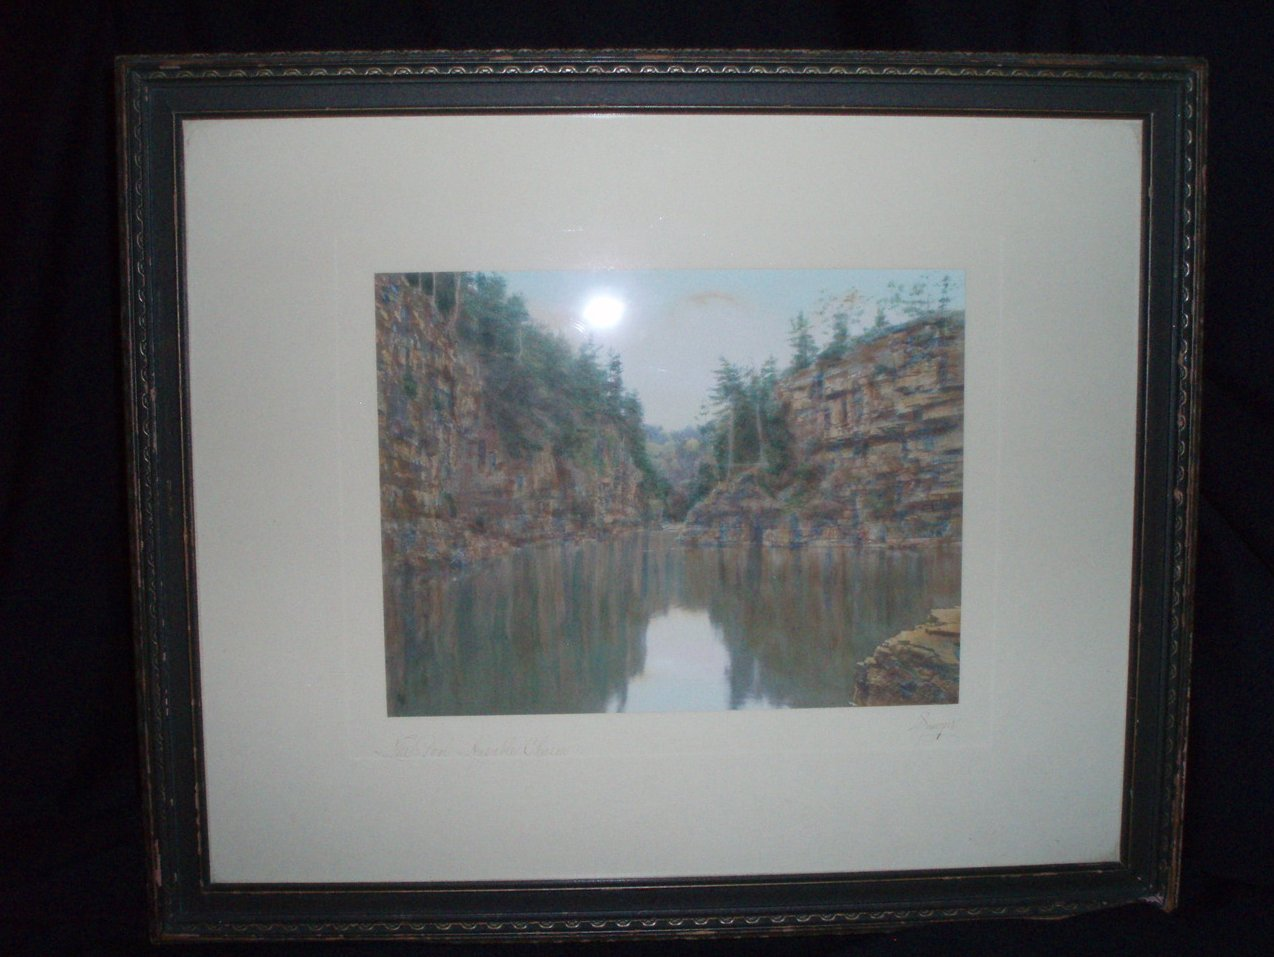 Charles Sawyer hand tint photo Ausable Chasm Pool